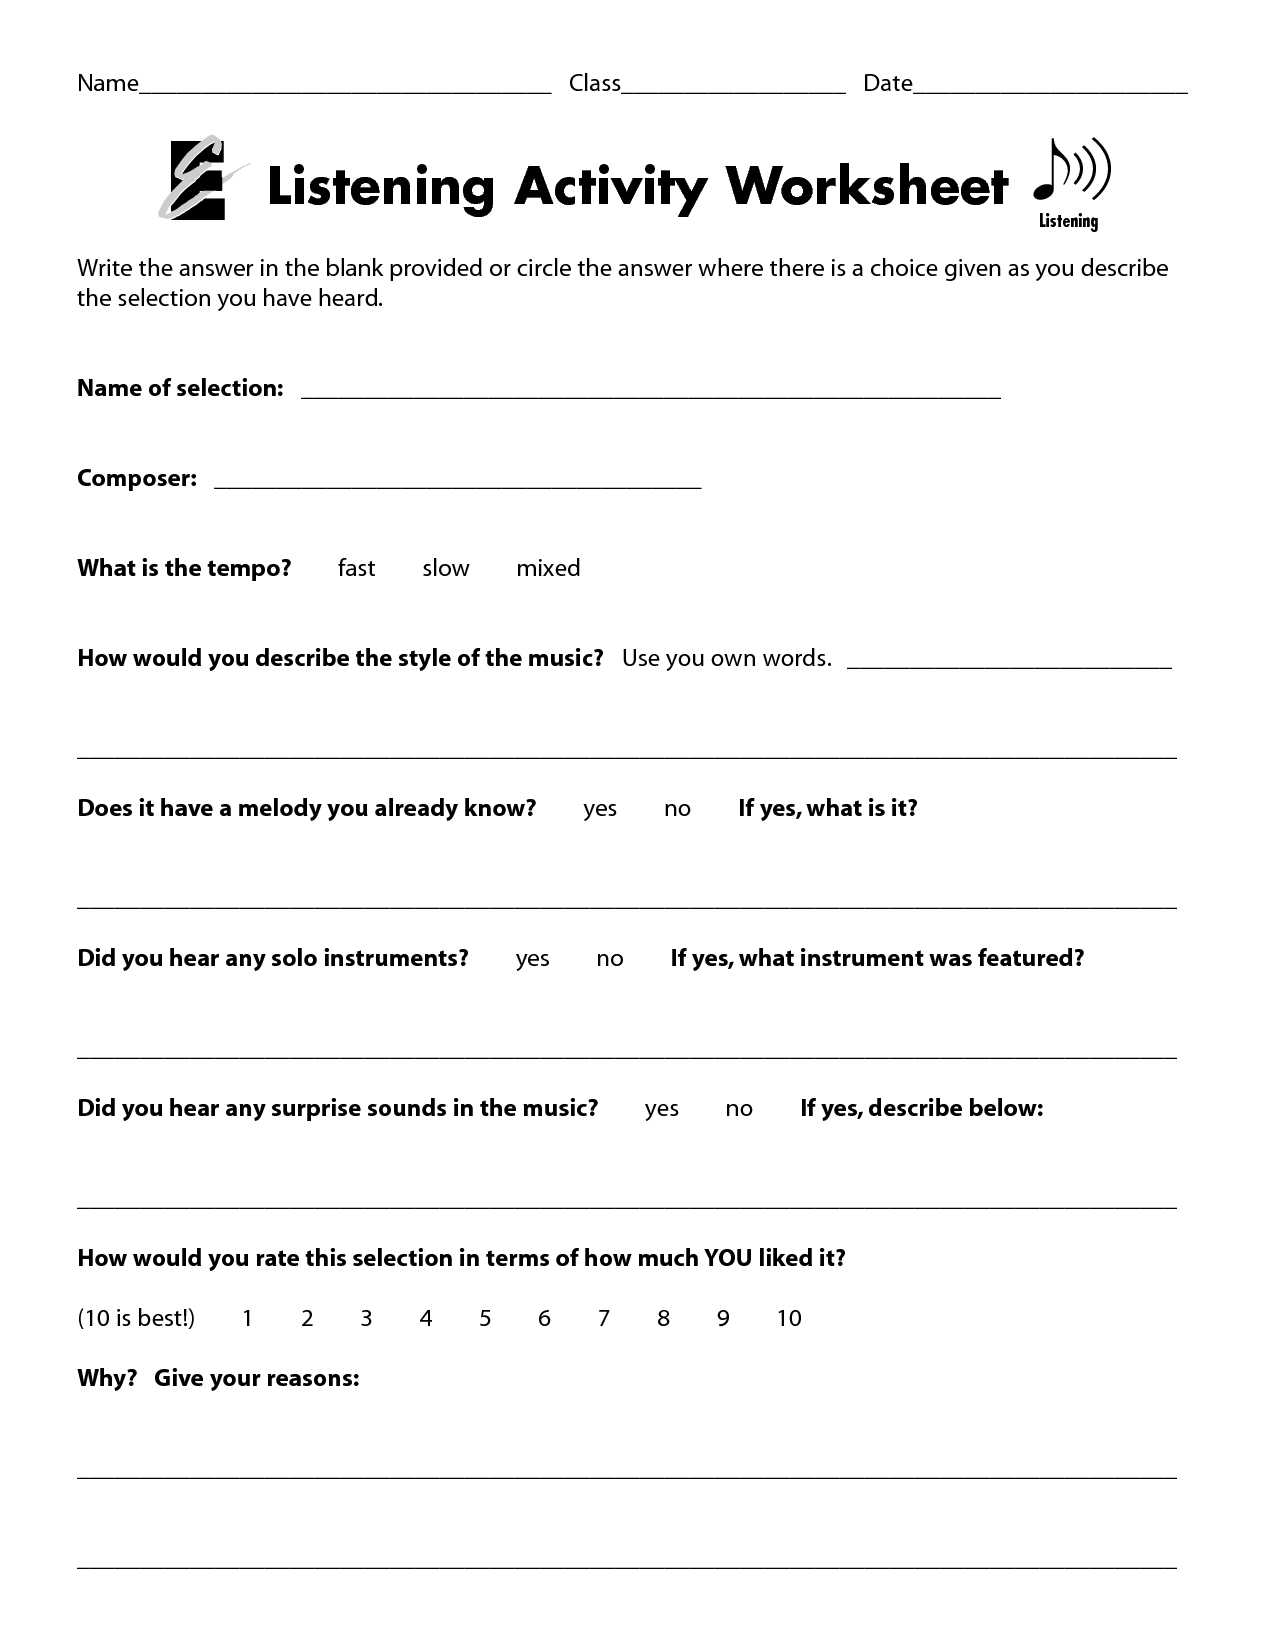 Crime Scene Activity Worksheets Also Worksheet Active Listening Skills Worksheets Grass Fedjp